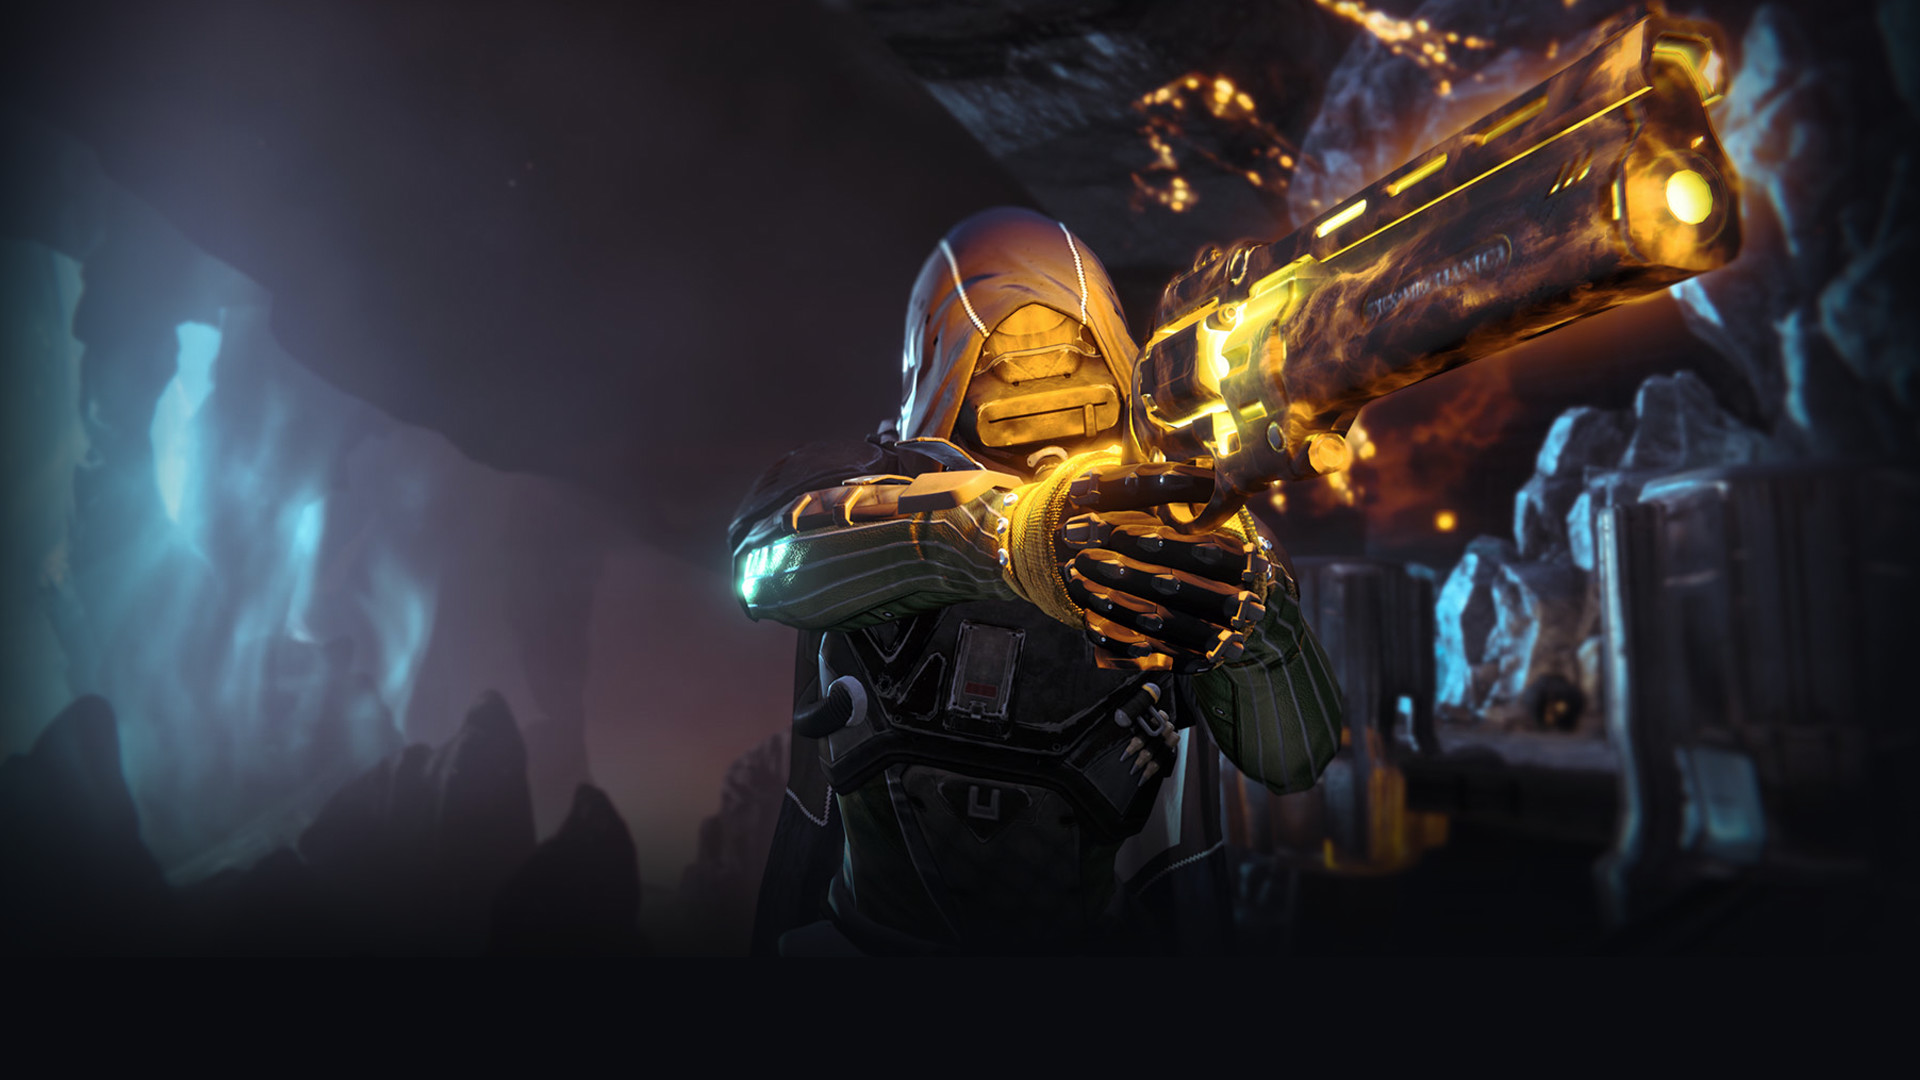 1920x1080 Desktop Wallpapers – InsideDestiny.net